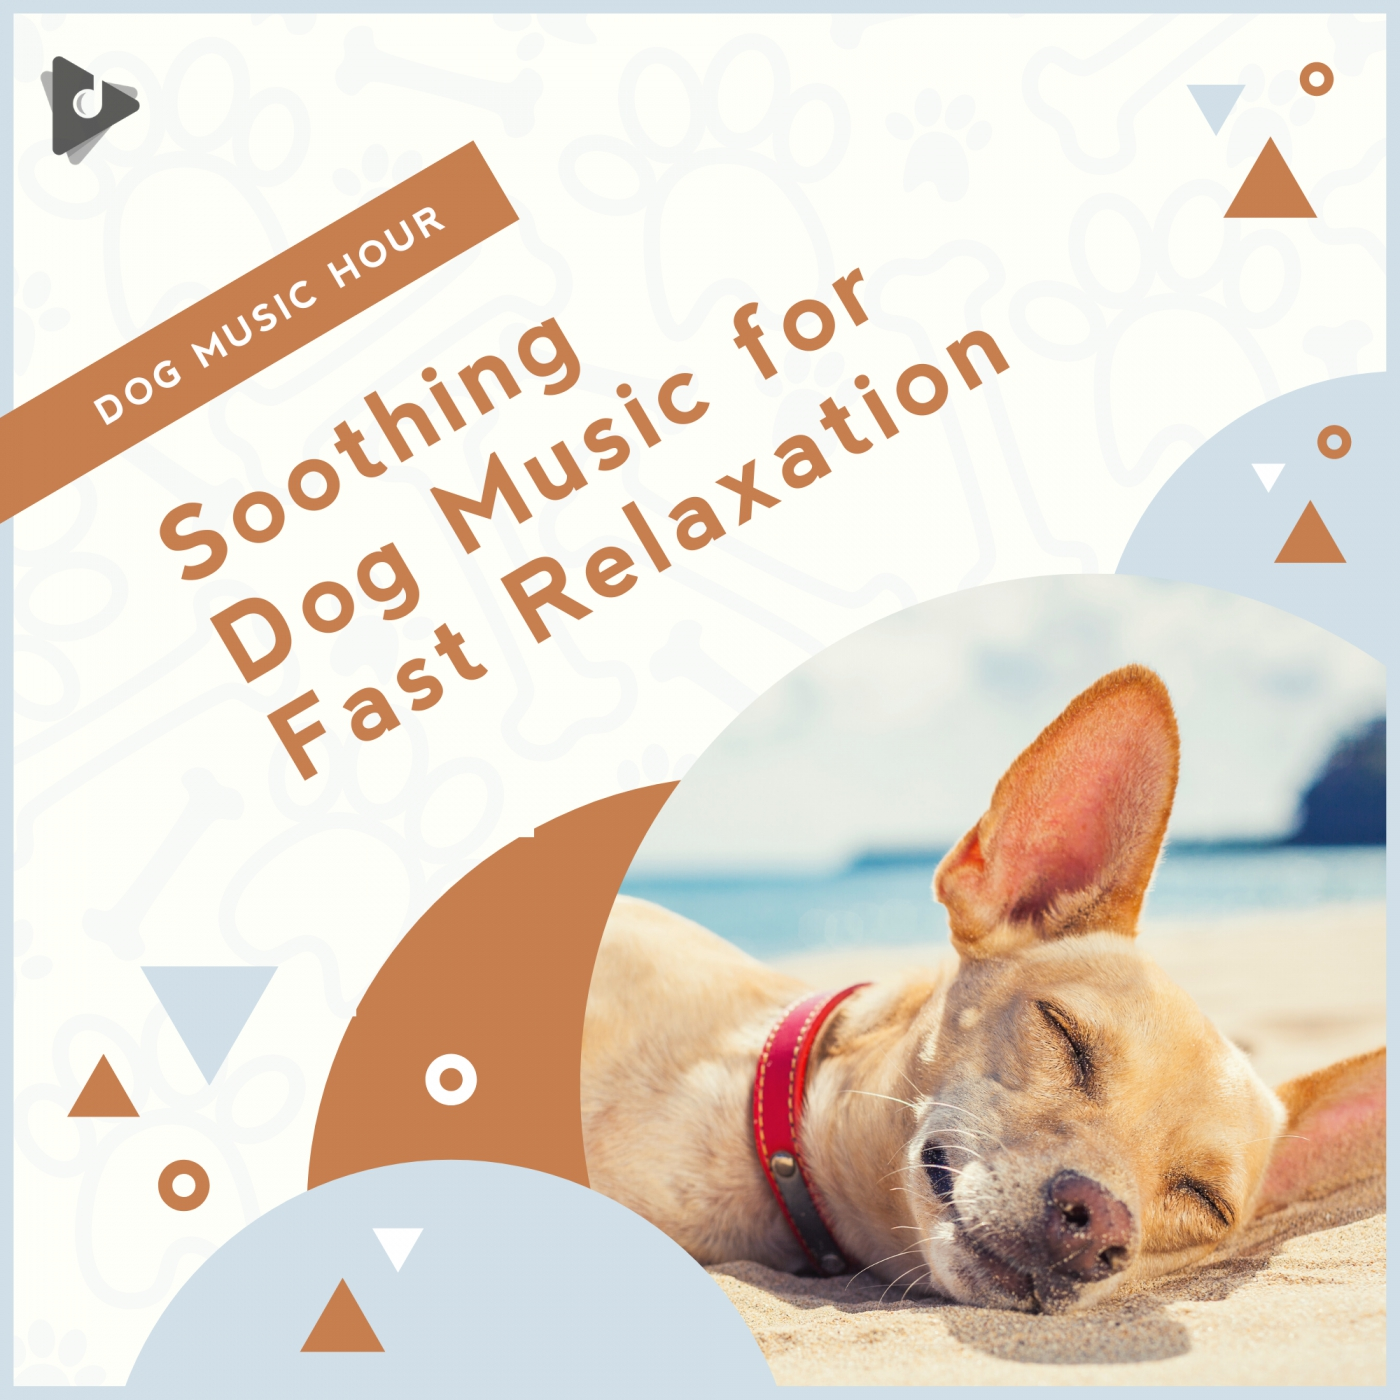 Soothing Dog Music for Fast Relaxation